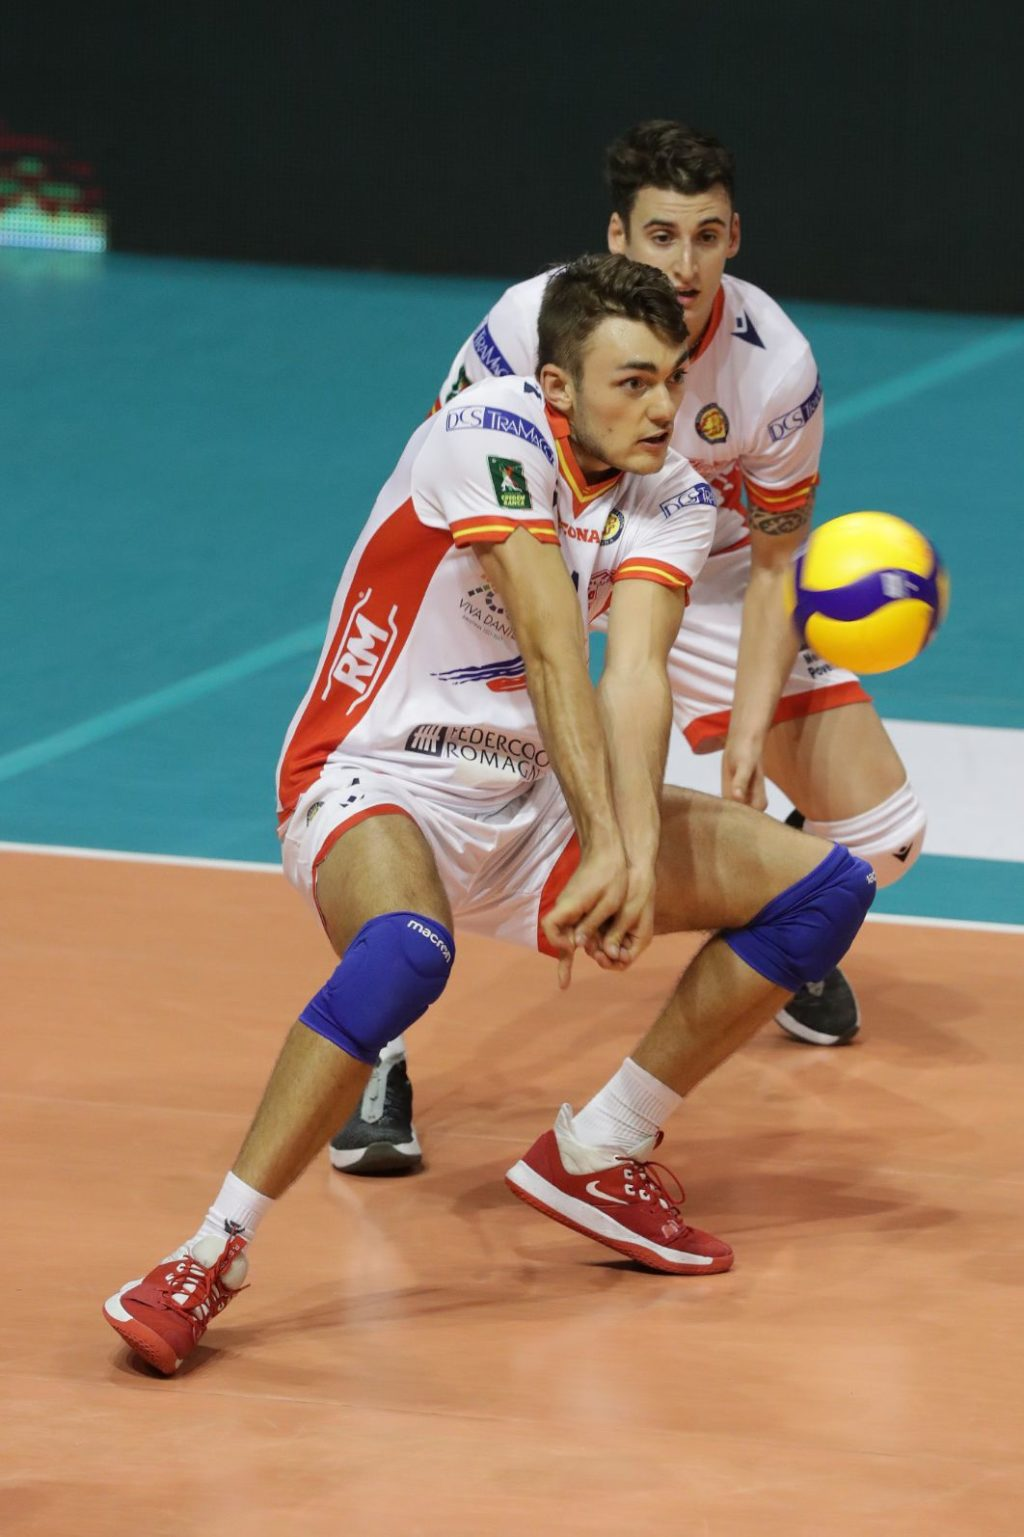 Volley, amarissimo tie-break per la Consar